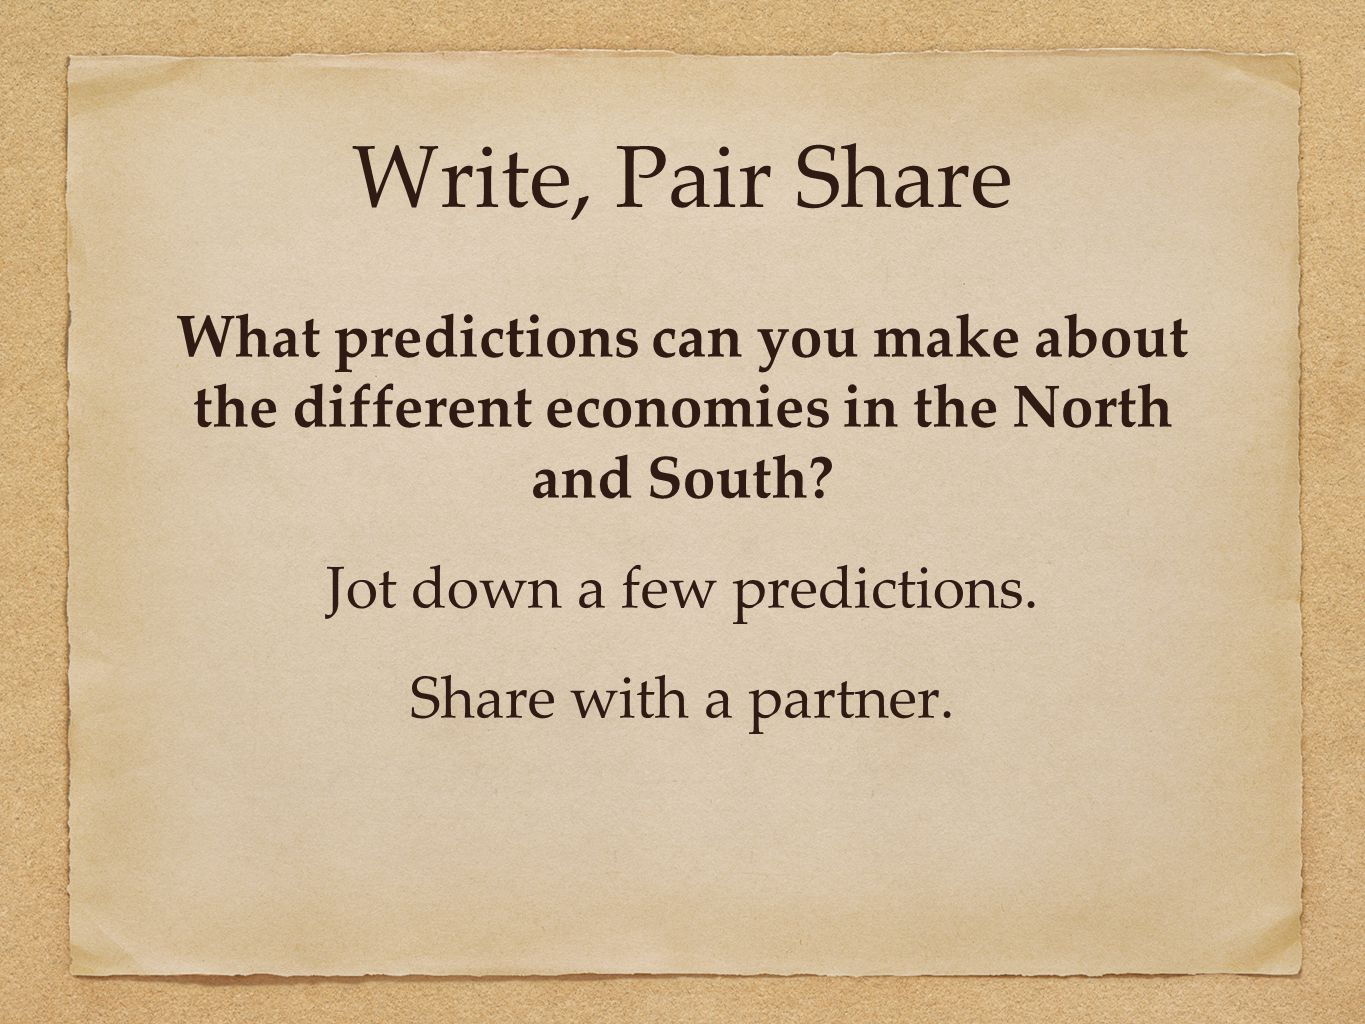 Write, Pair Share What predictions can you make about the different economies in the North and South.